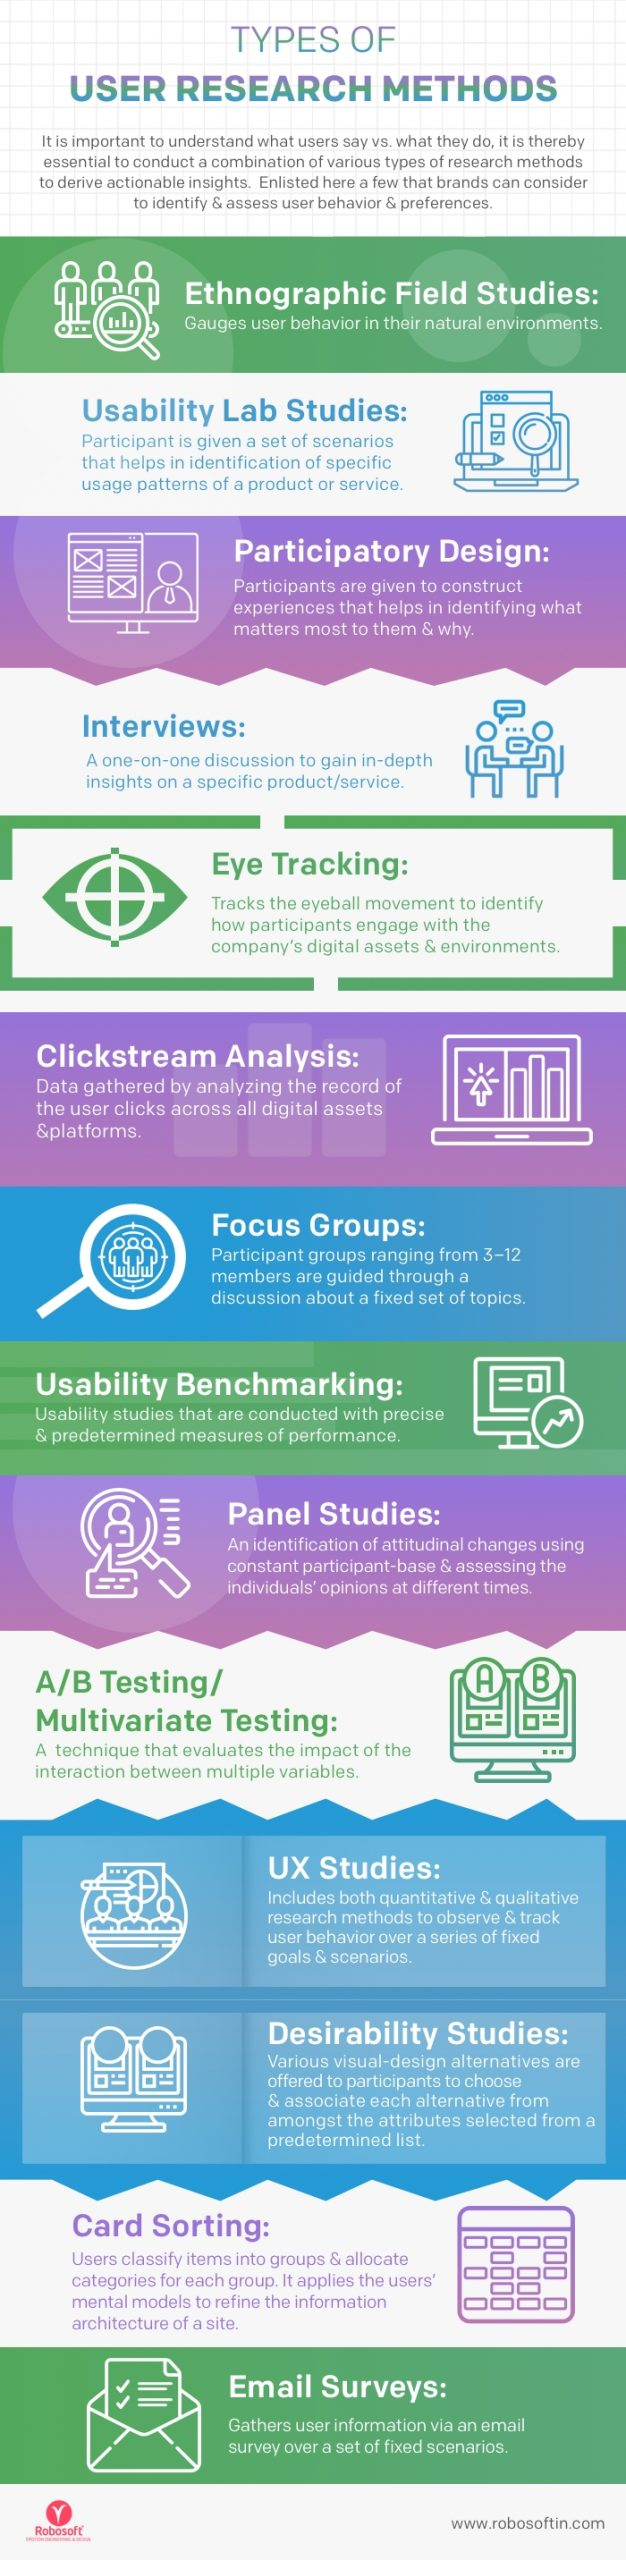 User Research Methods  and  Its Relevance for Enterprises [Infographic]